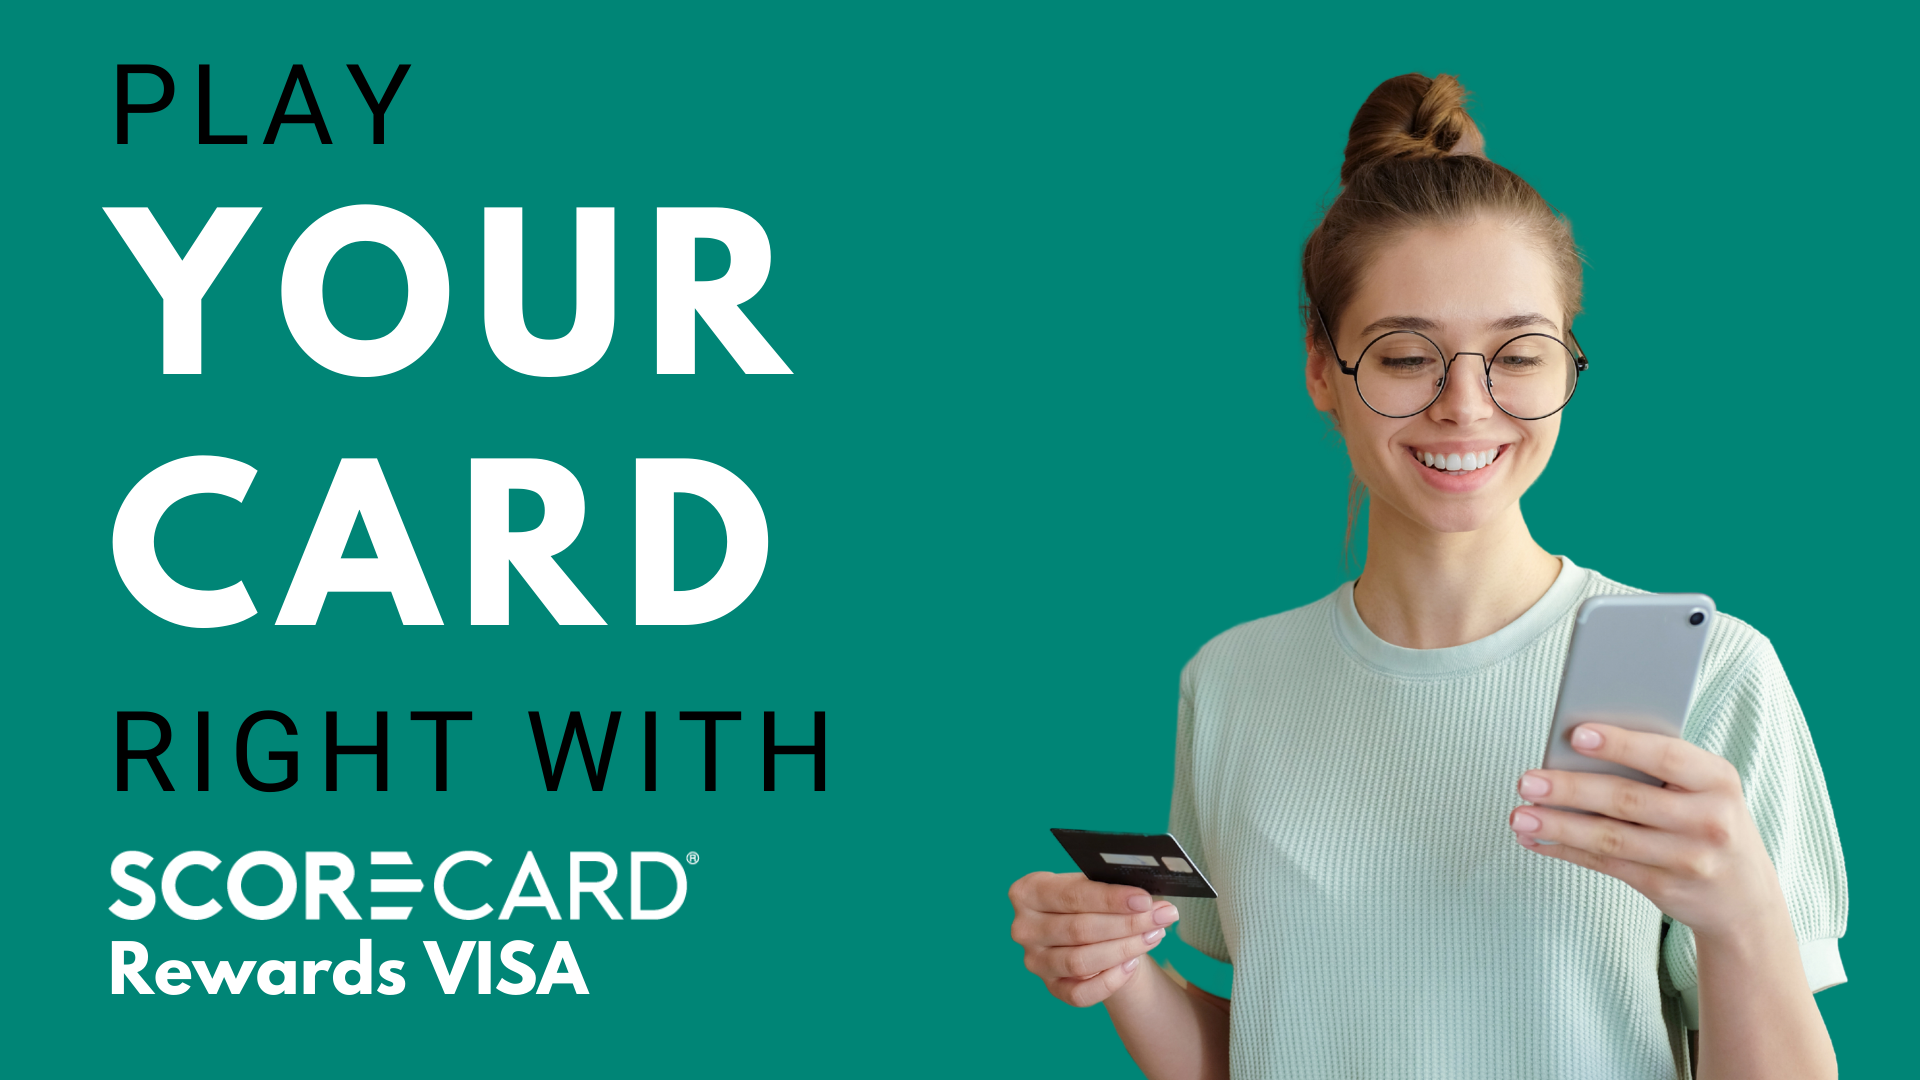 Play your card right with scorecard